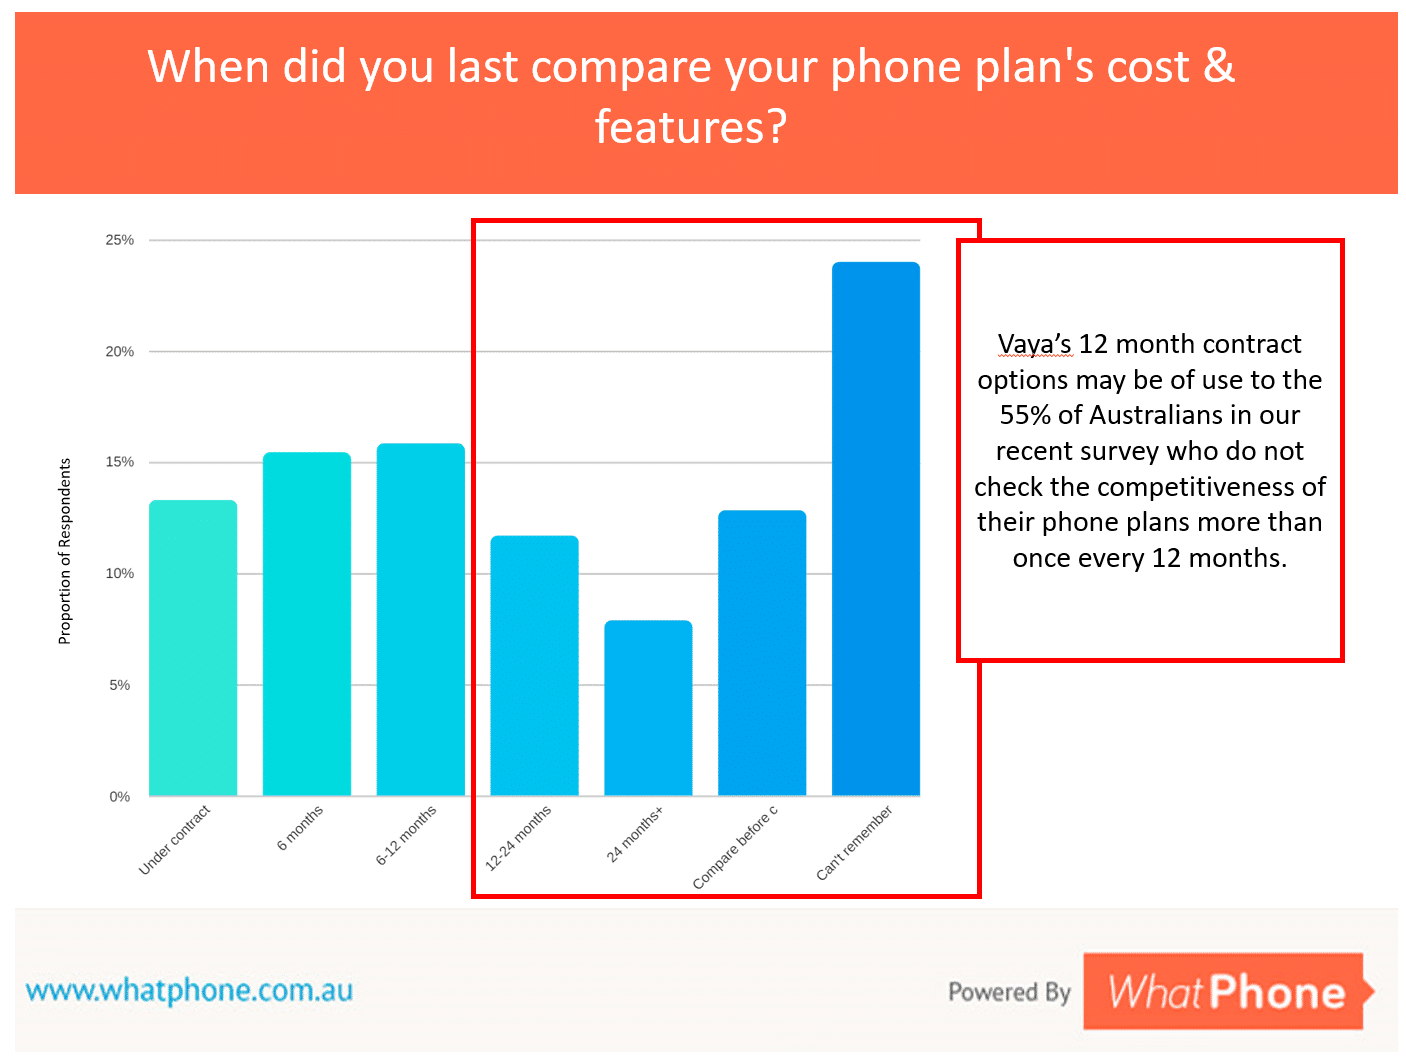 Why Vaya's 12 month plan options make sense for around half of people